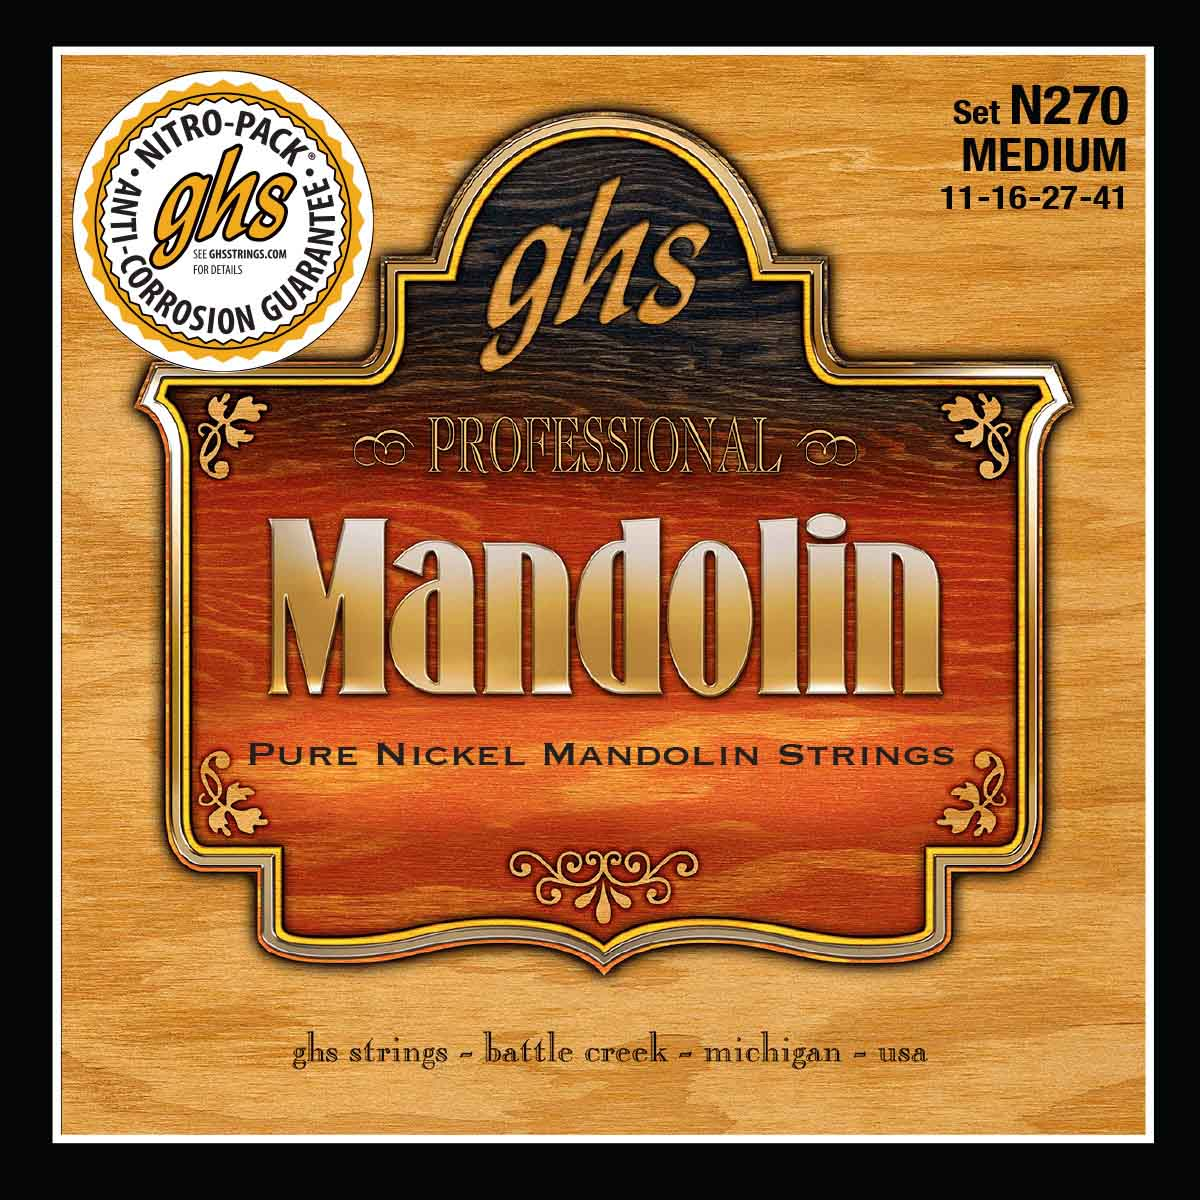 Ghs Mandoline Pure Nickel Medium 11-16-27-41